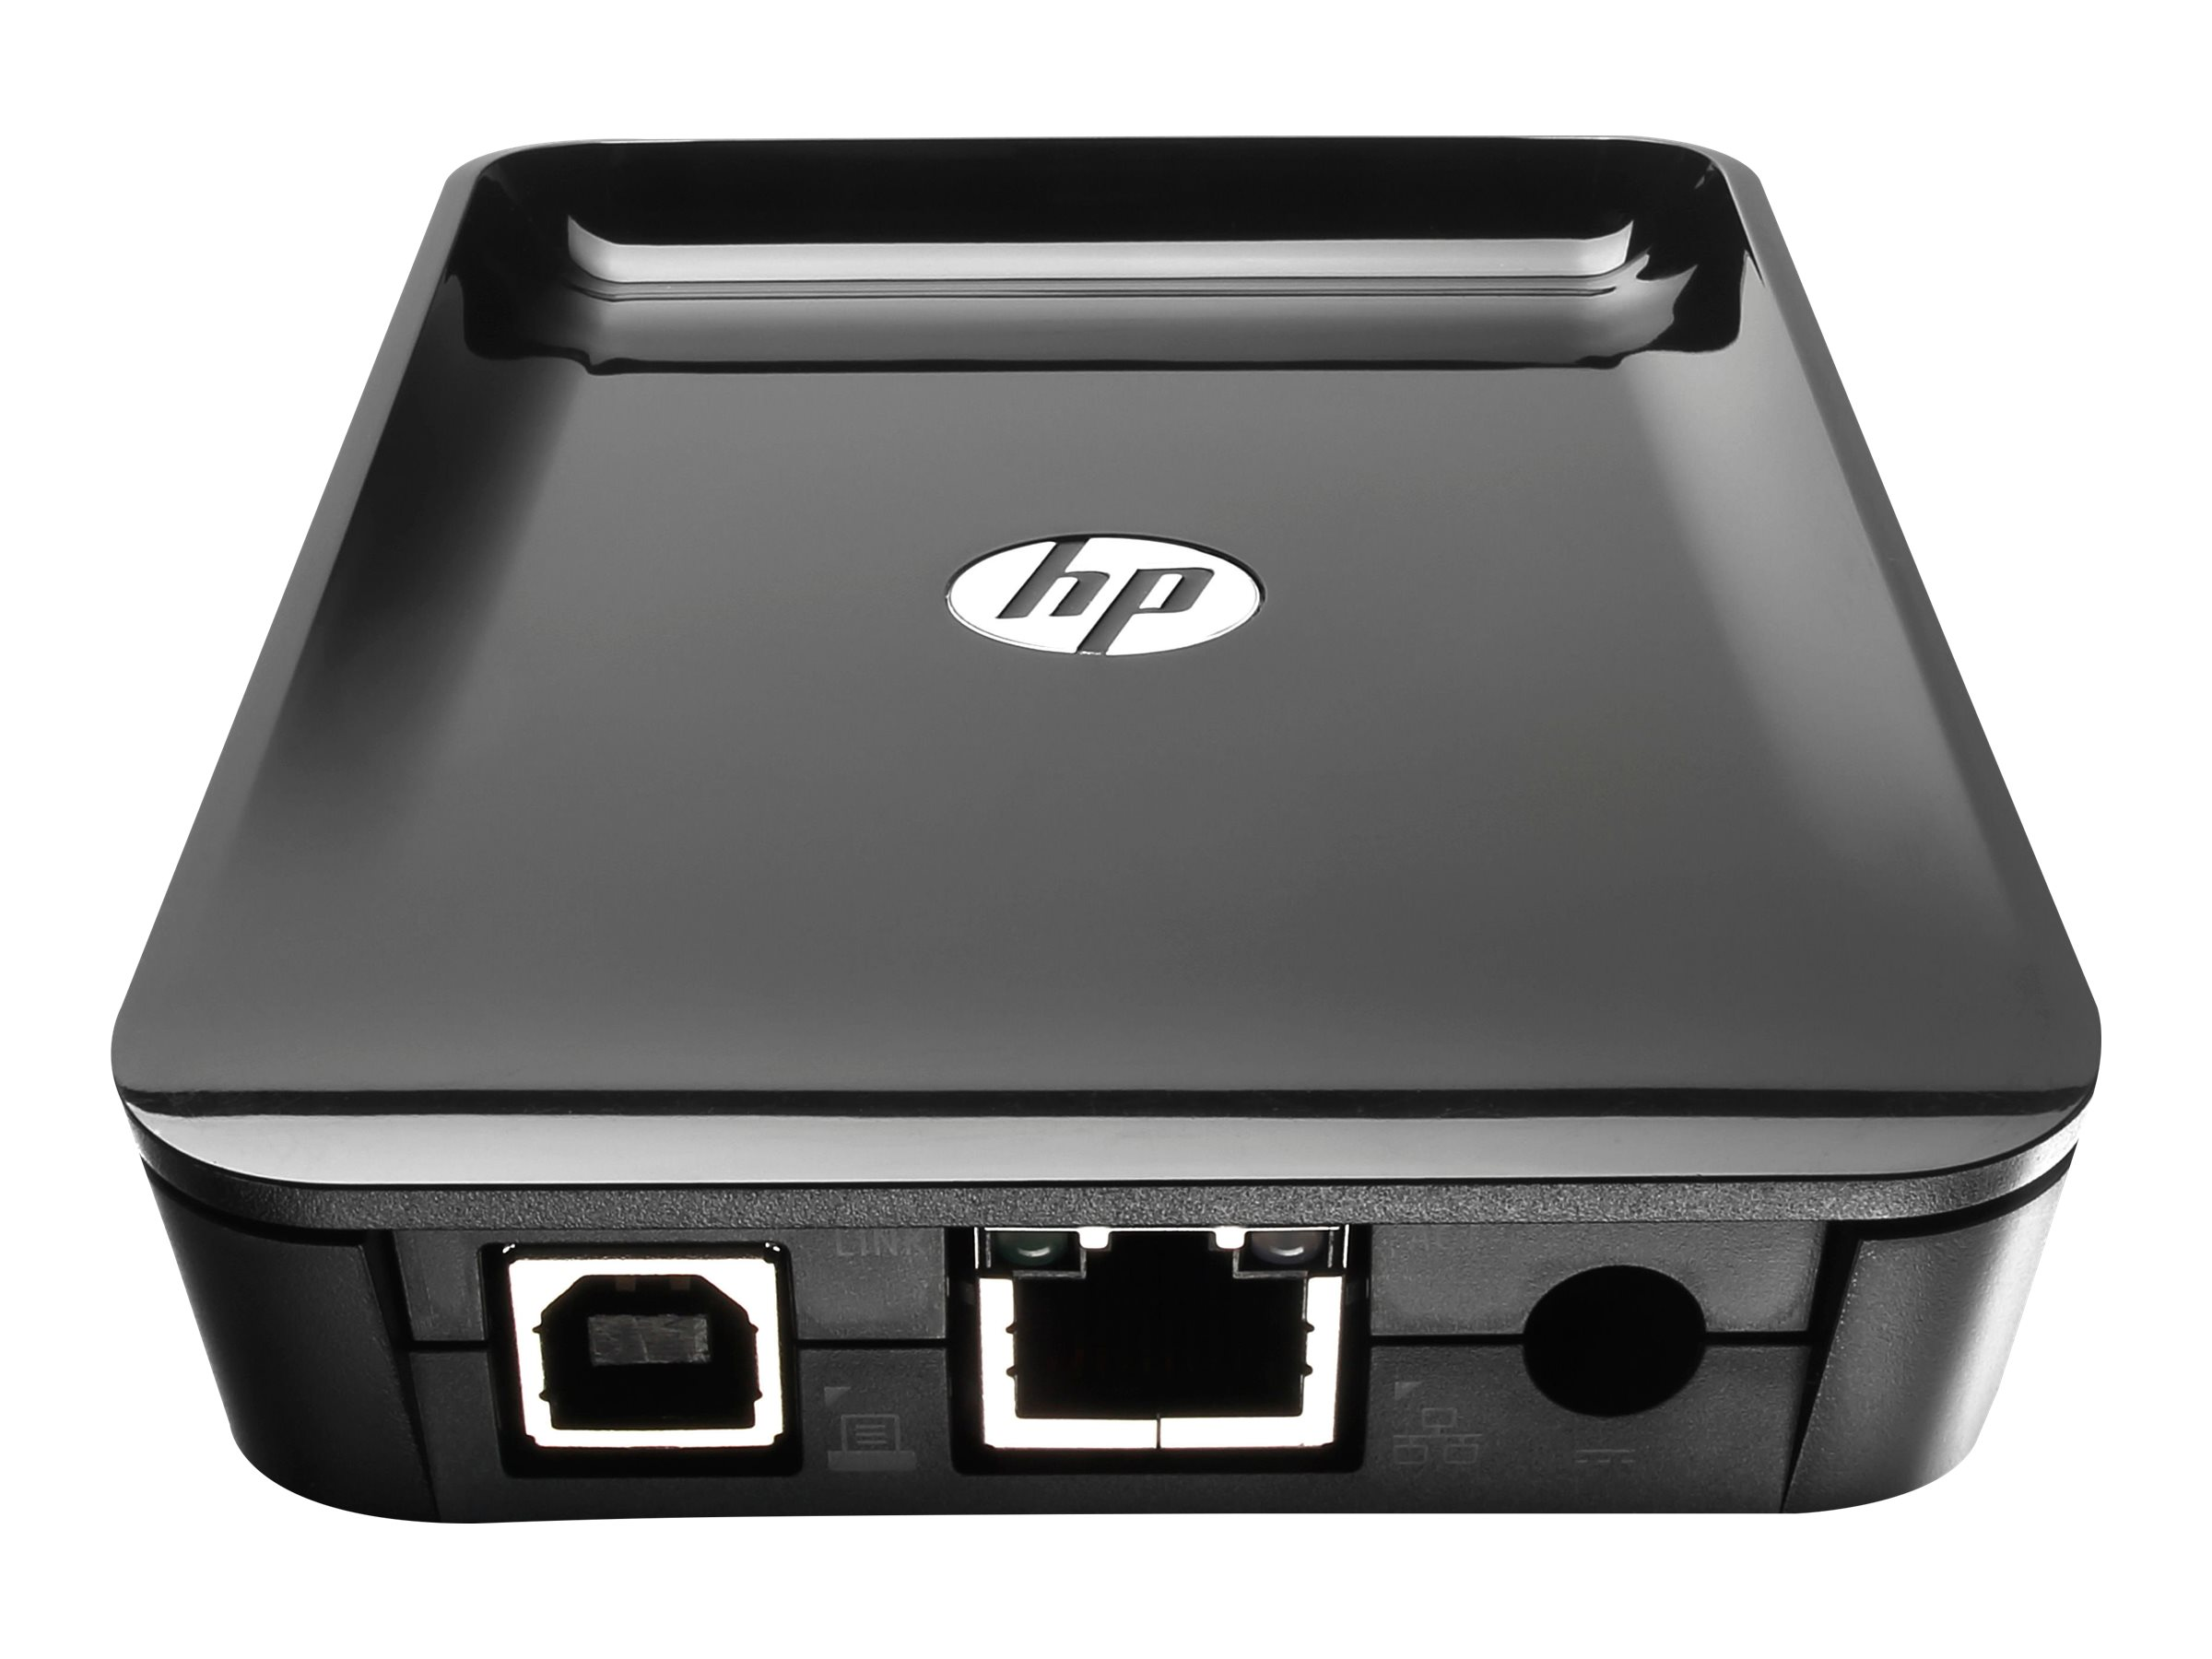 HP JetDirect 2900nw - print server - USB 2.0 - Gigabit Ethernet